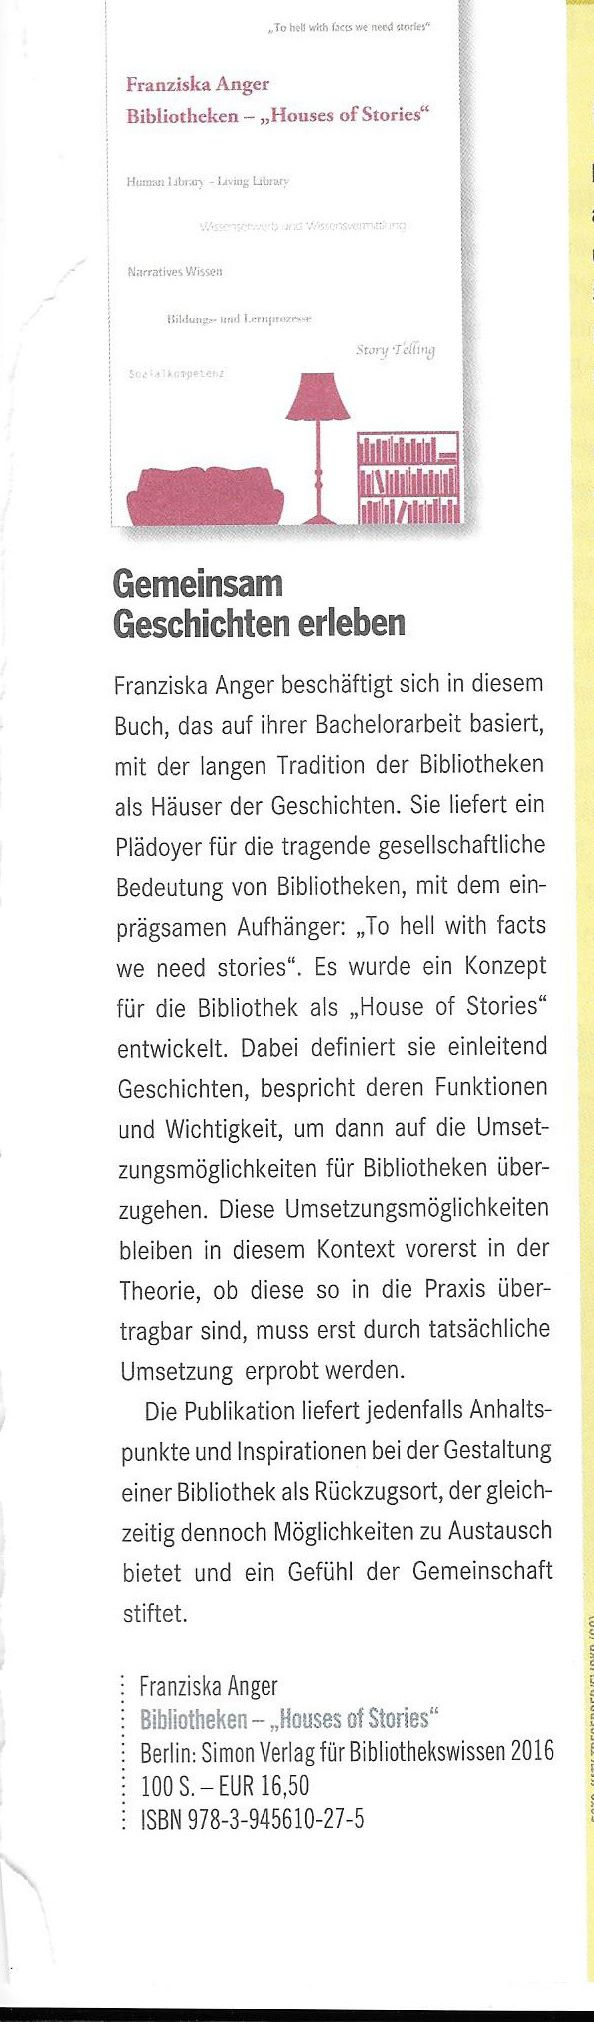 anger-bibliotheken-houses-of-stories-scan2